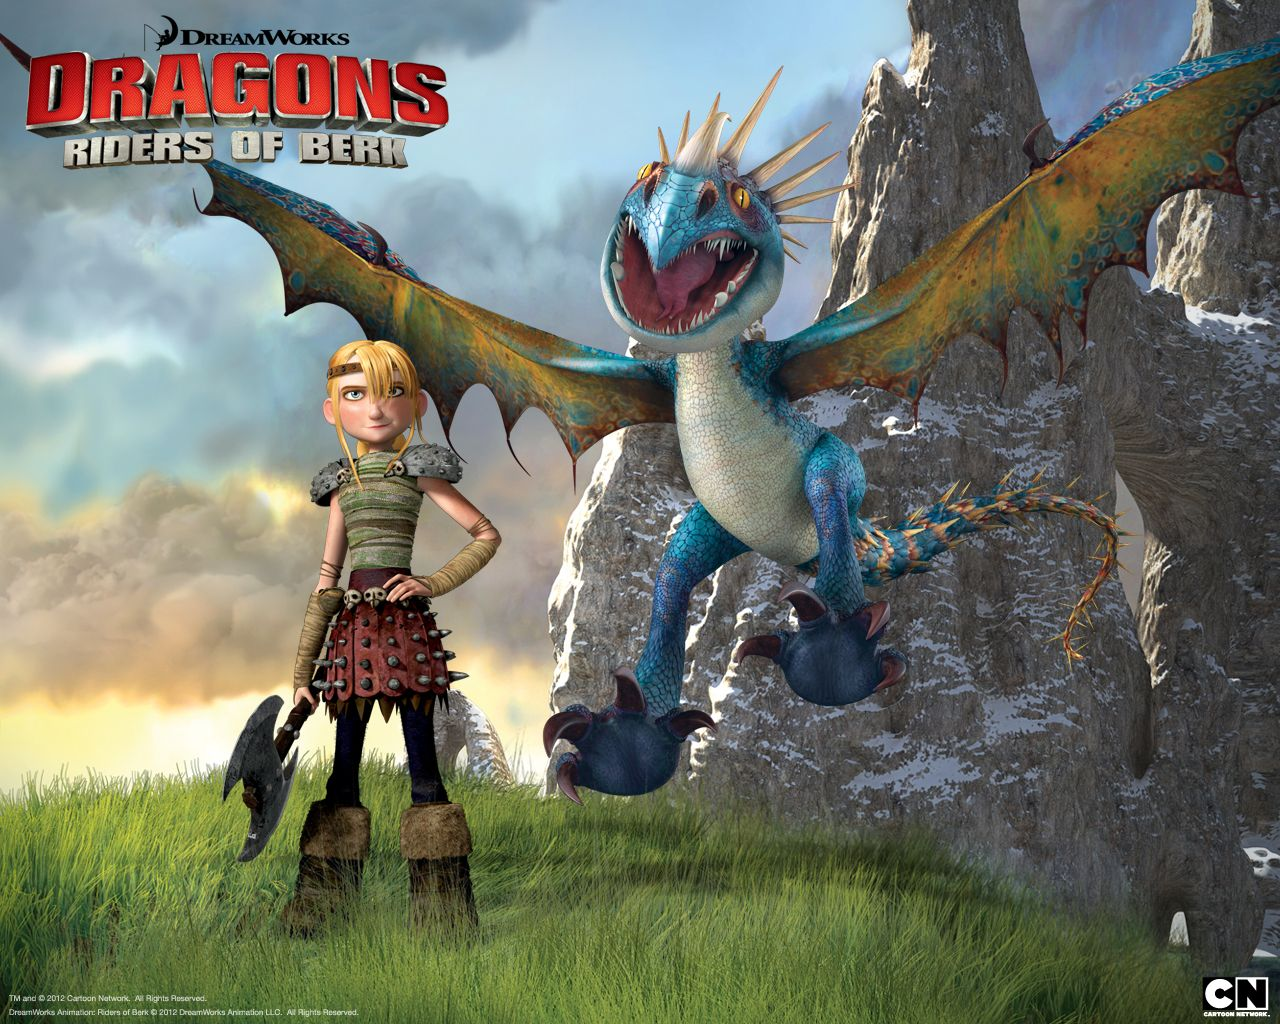 How To Train Your Dragon movie astrid | ... dragon from Dreamworks Dragons: Riders of Berk How to Train Your